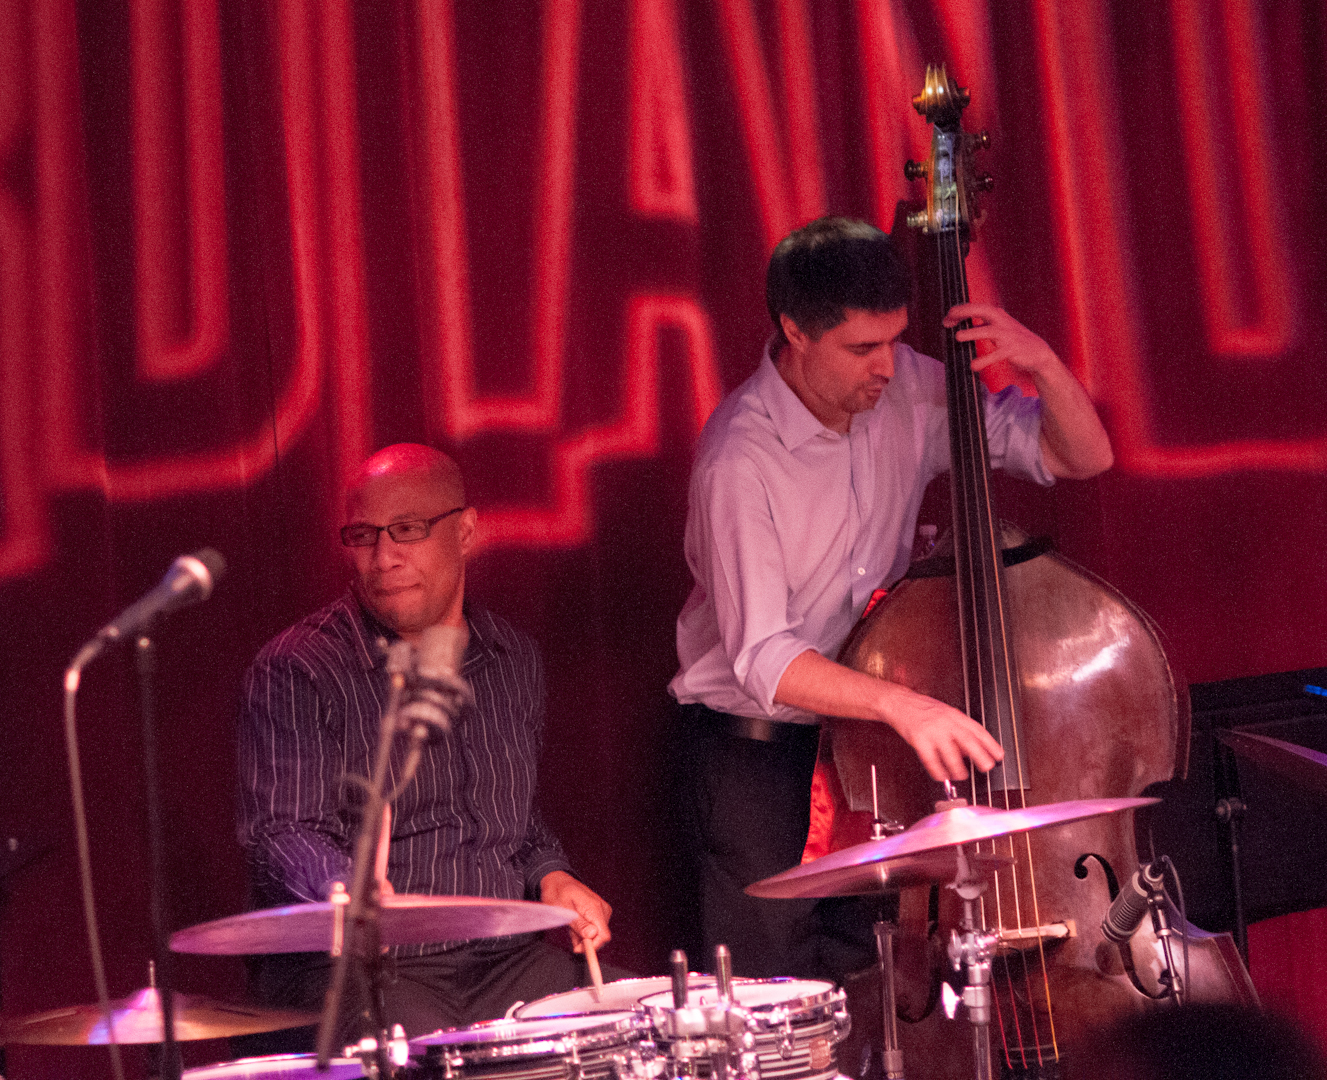 Otis Brown III and Peter Slavov with Joe Lovano Us Five at Birdland